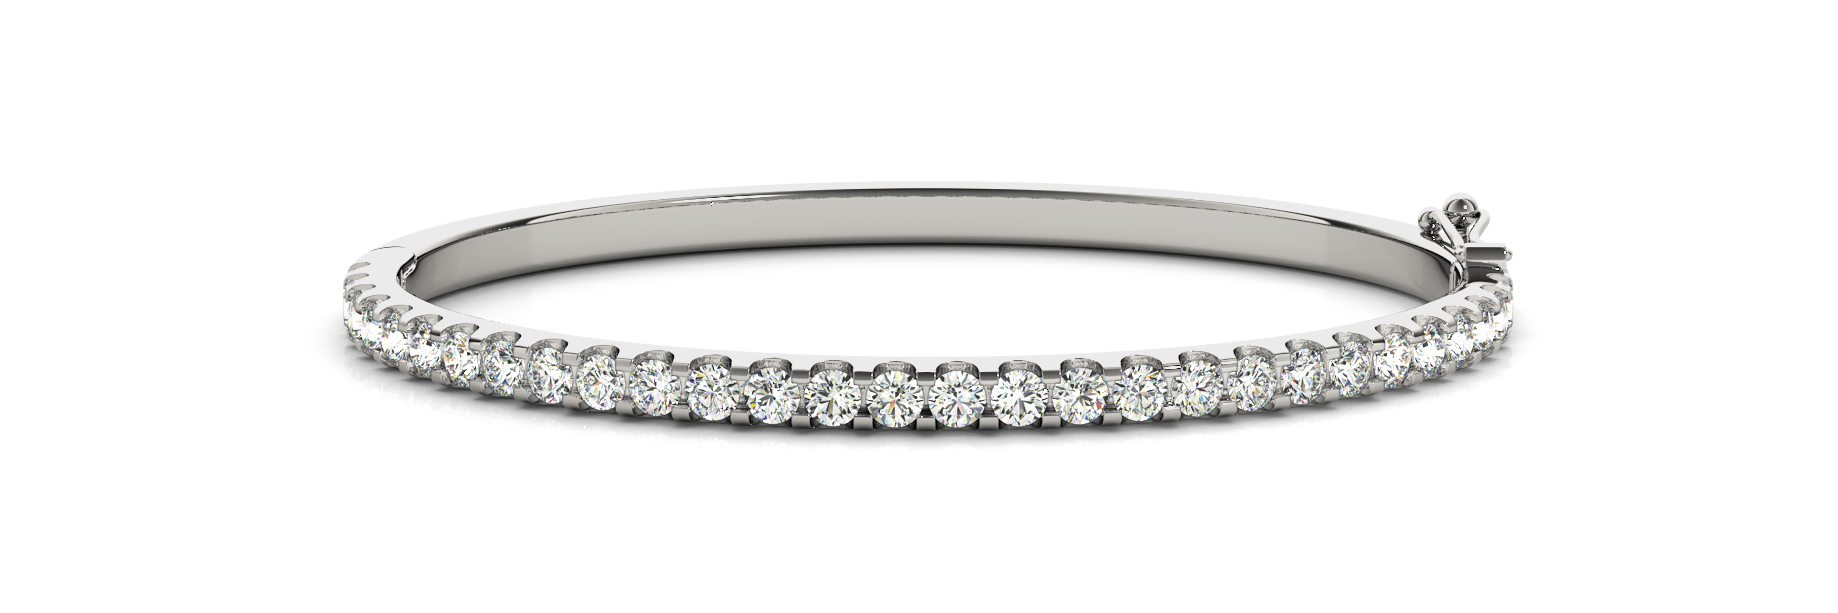 3.12 Carat Round Diamond Bangle in White Gold